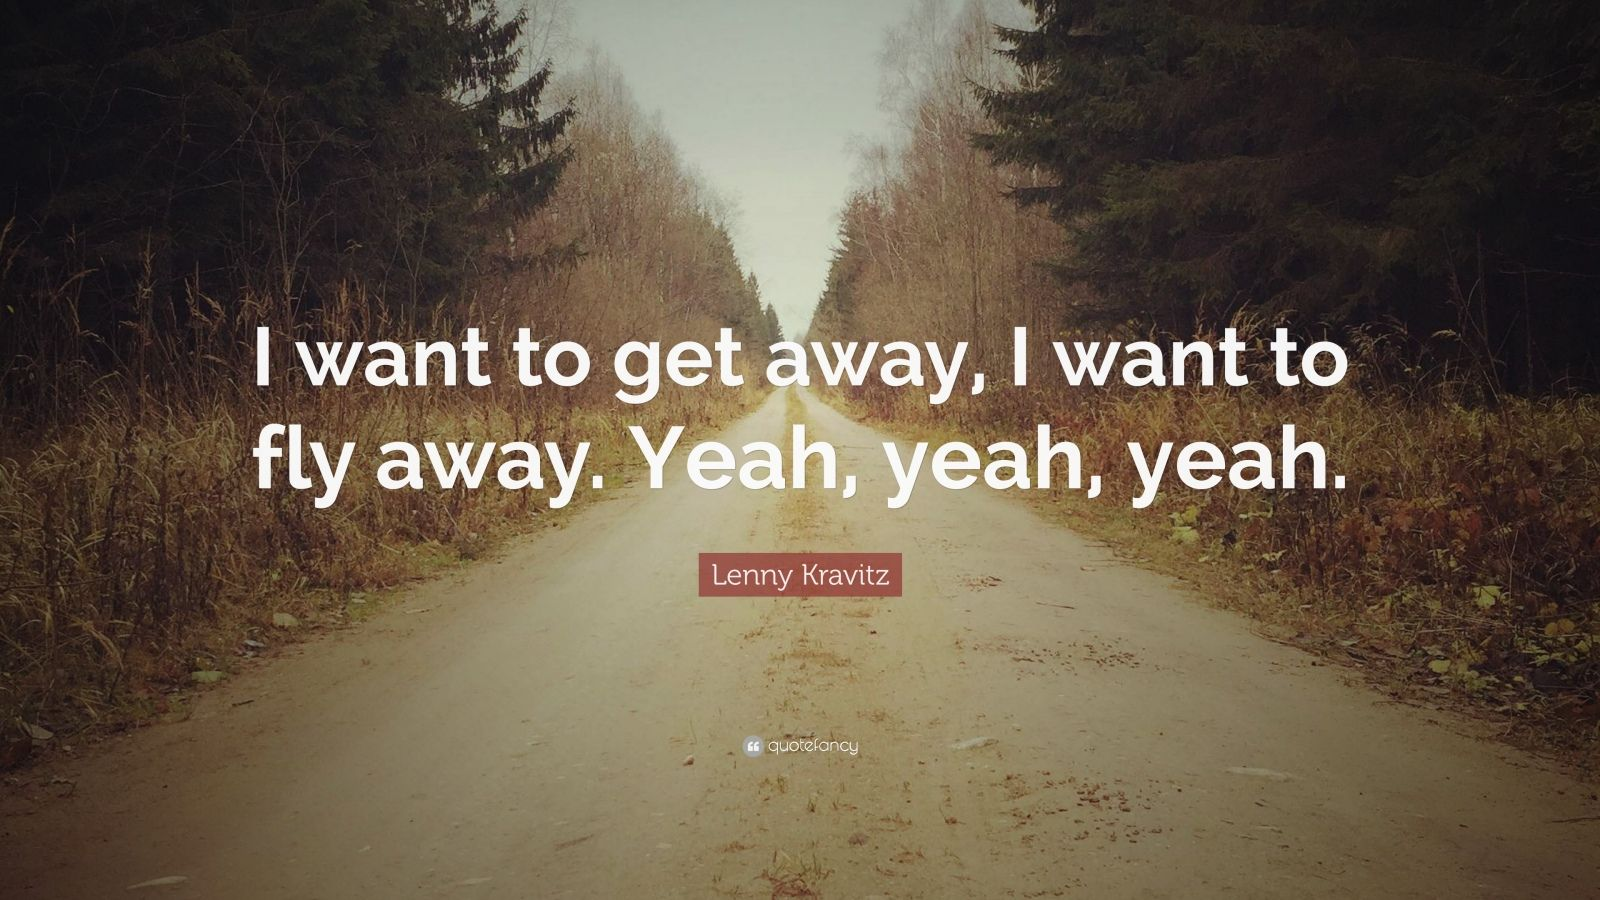 Lenny Kravitz Quotes 100 Wallpapers Quotefancy